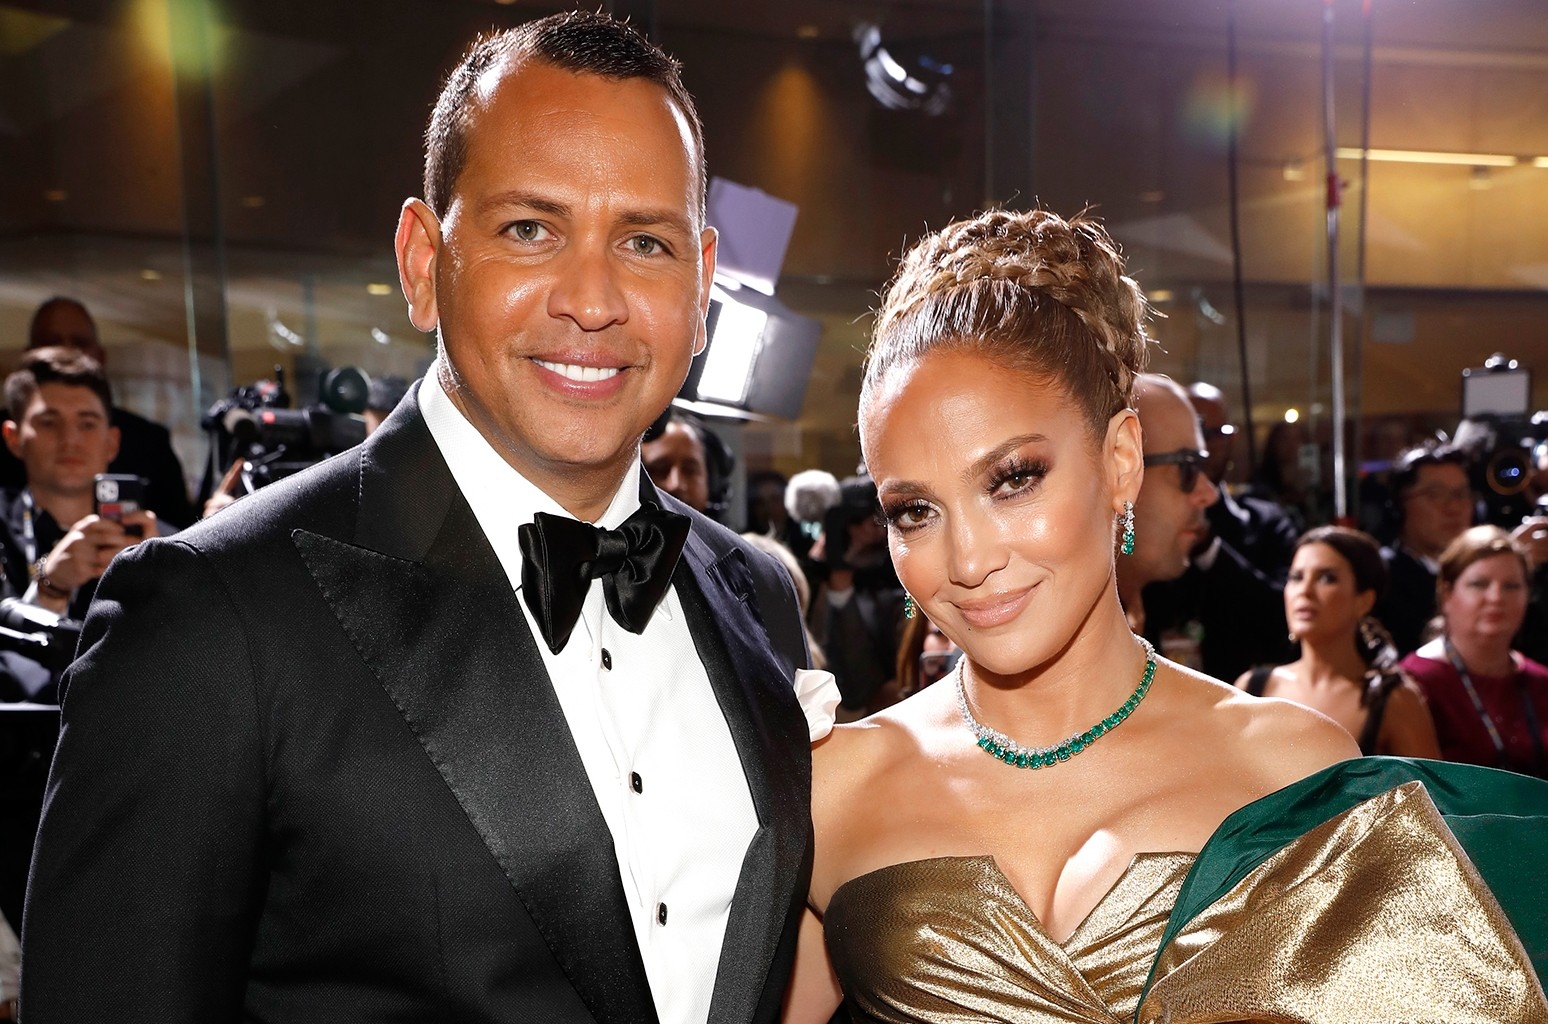 Alex Rodriguez and Jennifer Lopez arrive to the 77th Annual Golden Globe Awards held at the Beverly Hilton Hotel on Jan. 5, 2020. (Trae Patton/NBC/NBCU Photo Bank via Getty Images)